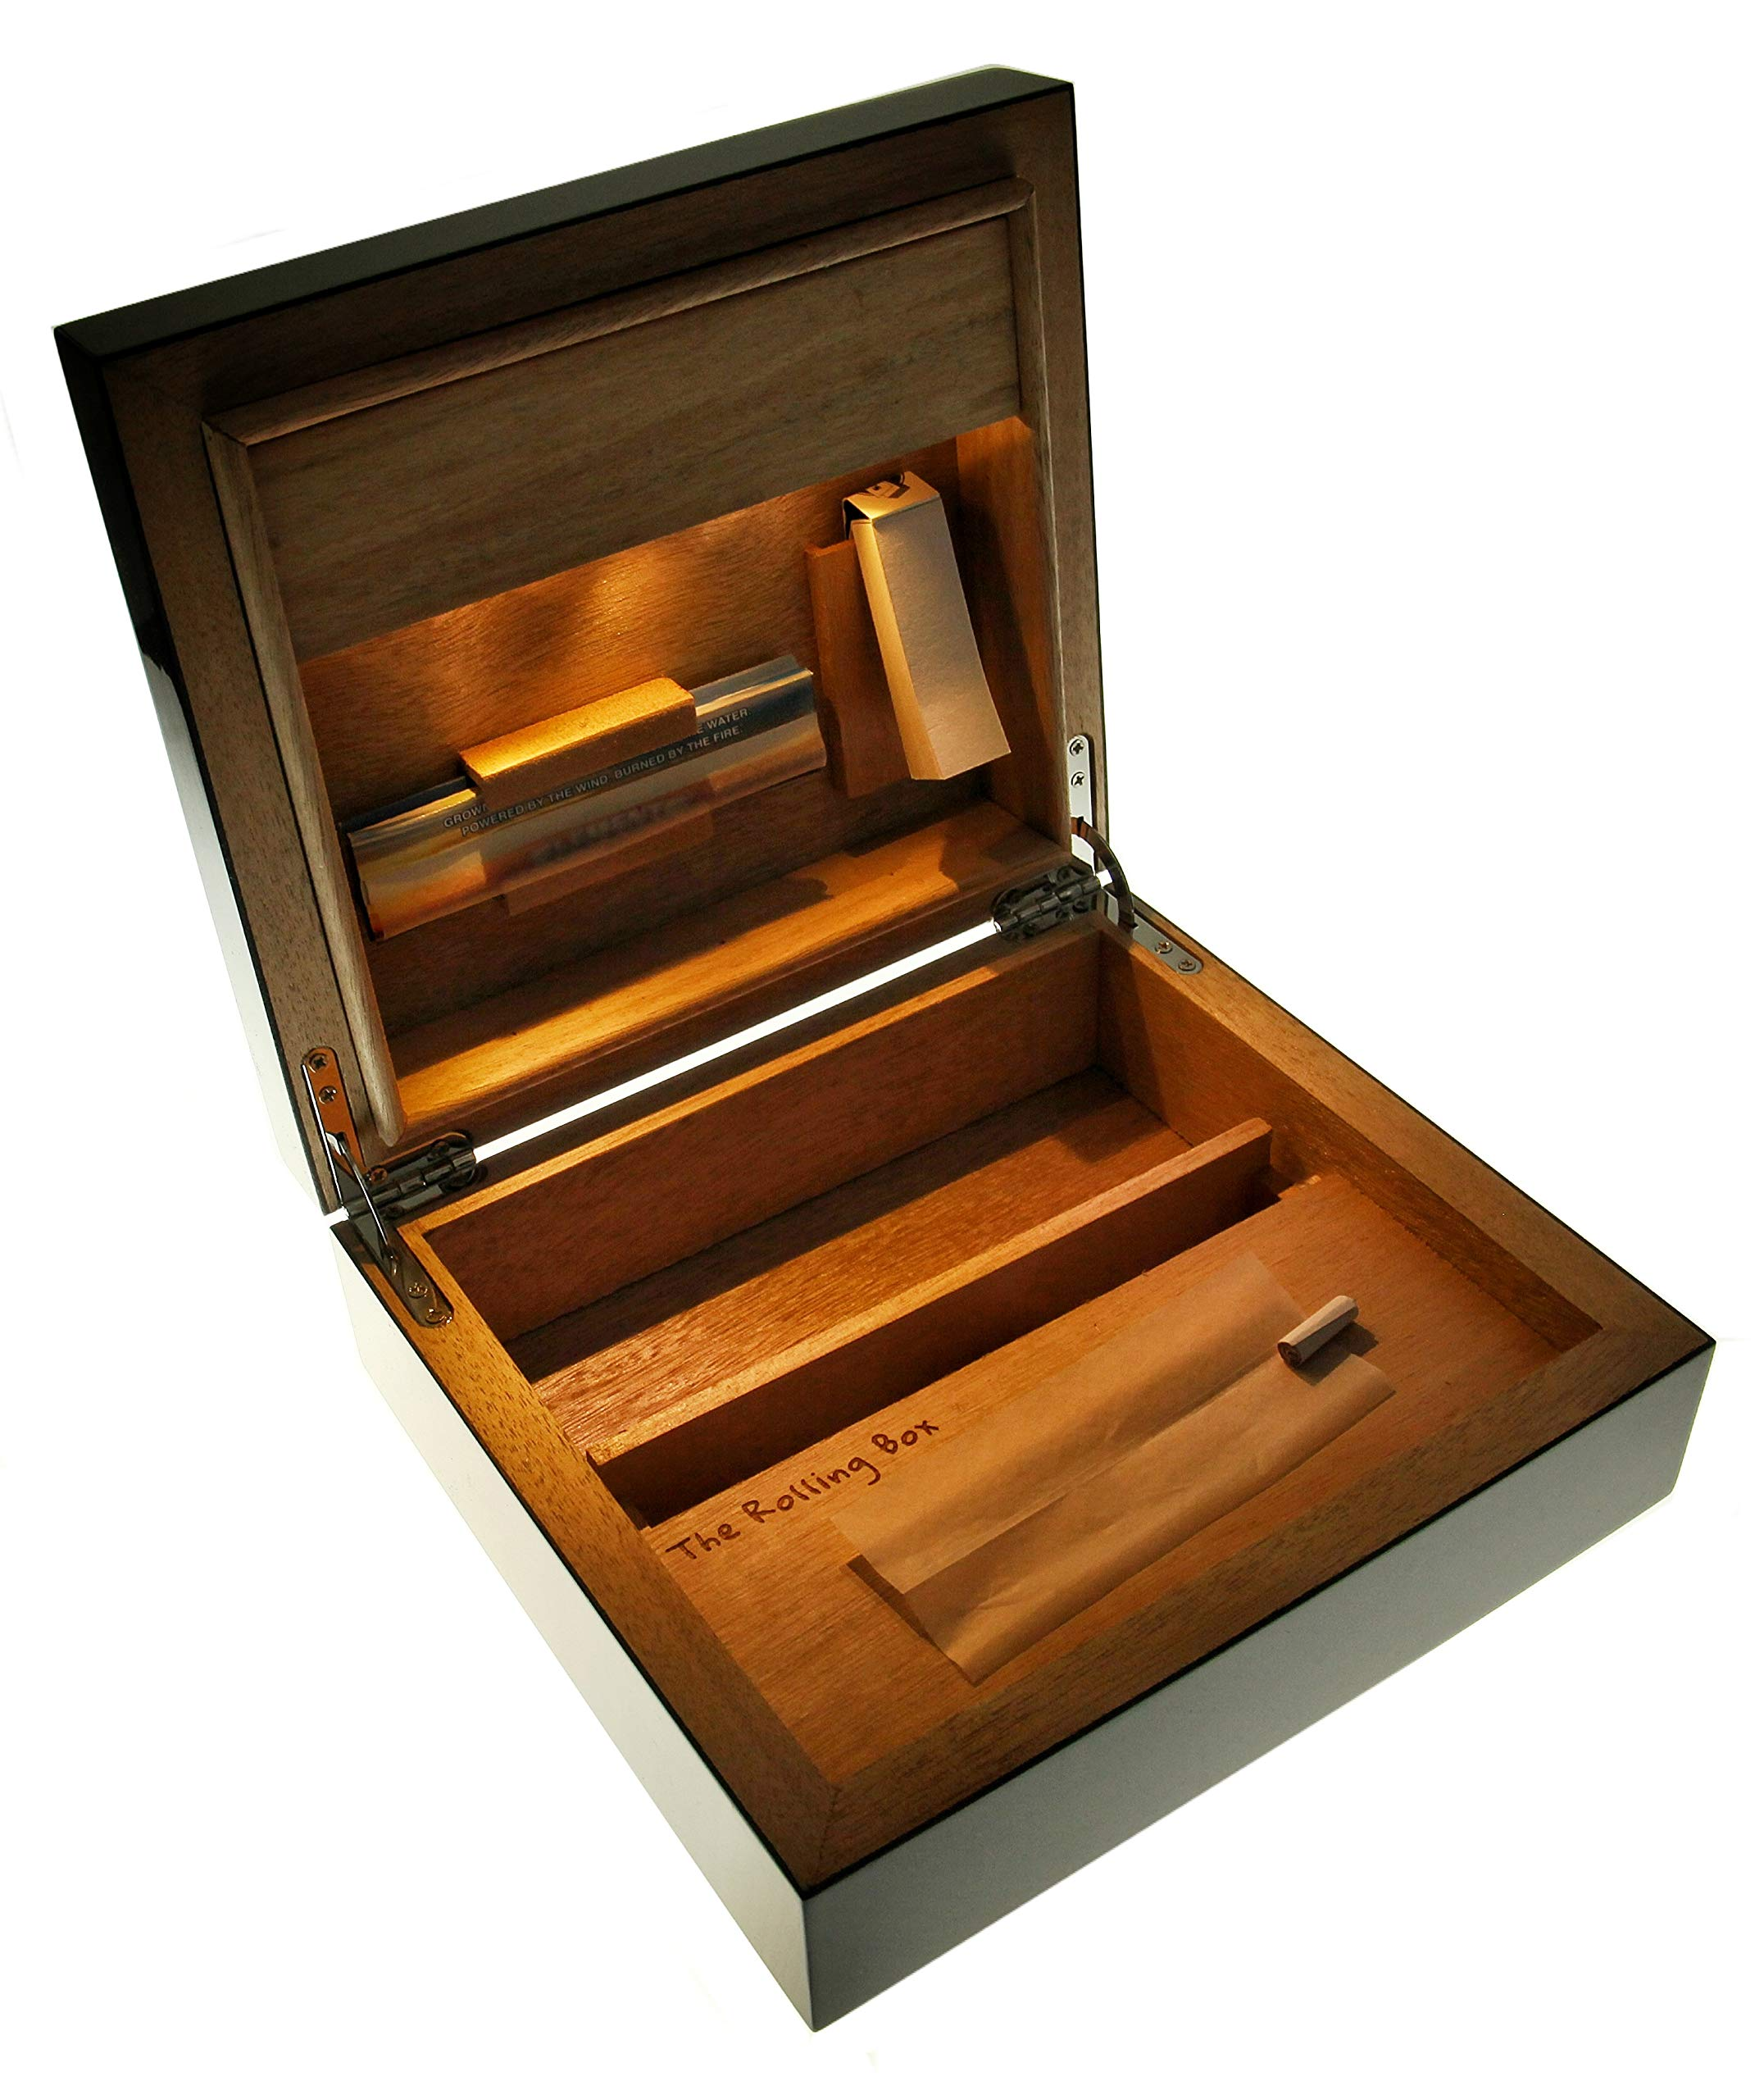 The Rolling Box Regia 210 - The smoker's stash Box with LED Lights